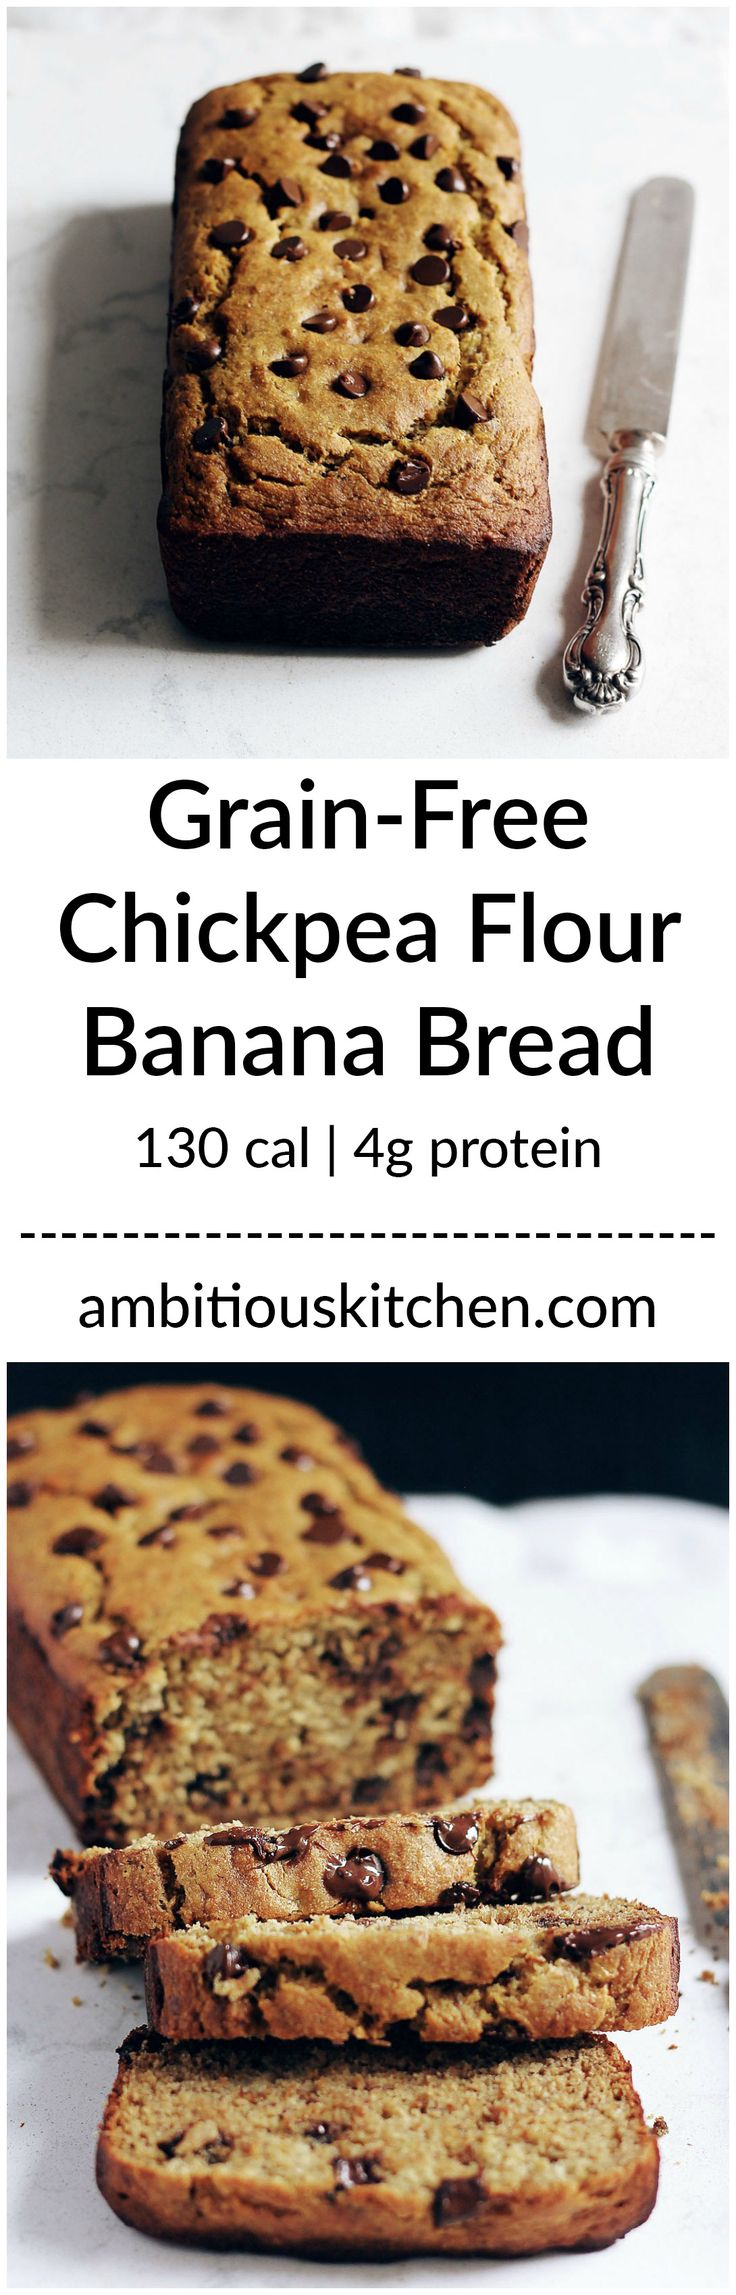 Try this beautiful chickpea flour banana bread packed with protein & fiber. You can't tell that it isn't made with regular flour! I use applesauce instead of honey. Yum.